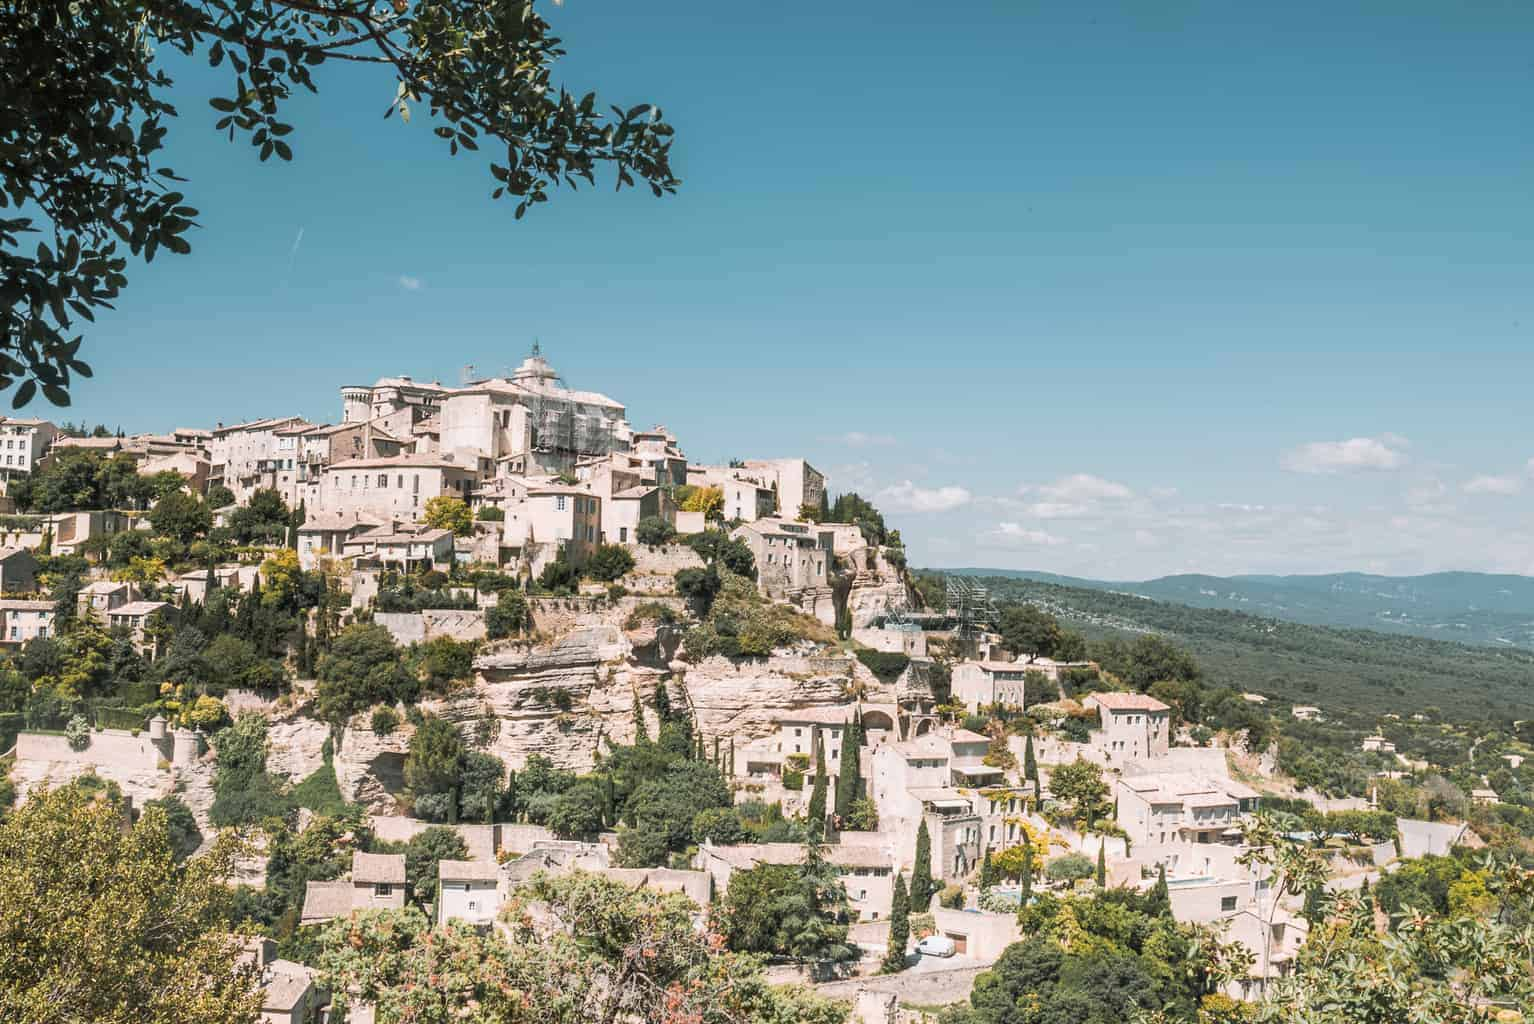 Visiting the village of Gordes on a luxury lavender tour in Provence, France